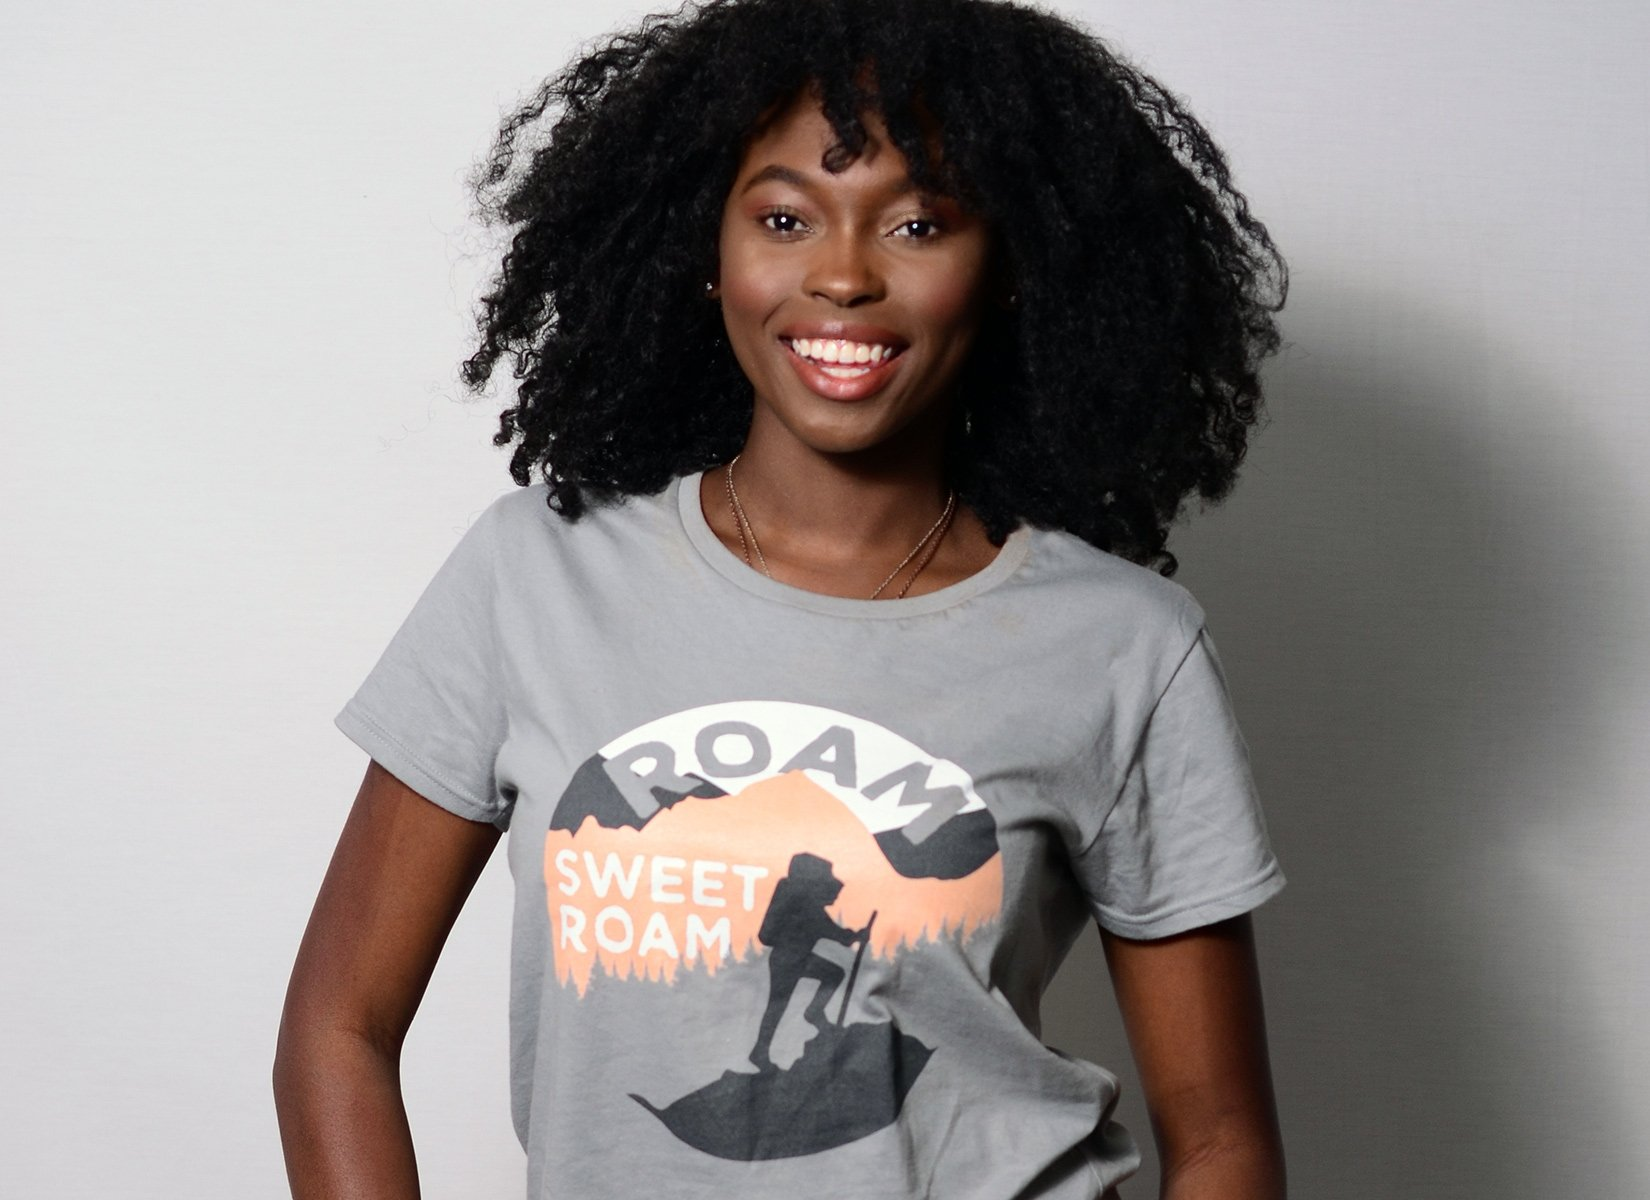 Roam Sweet Roam on Womens T-Shirt